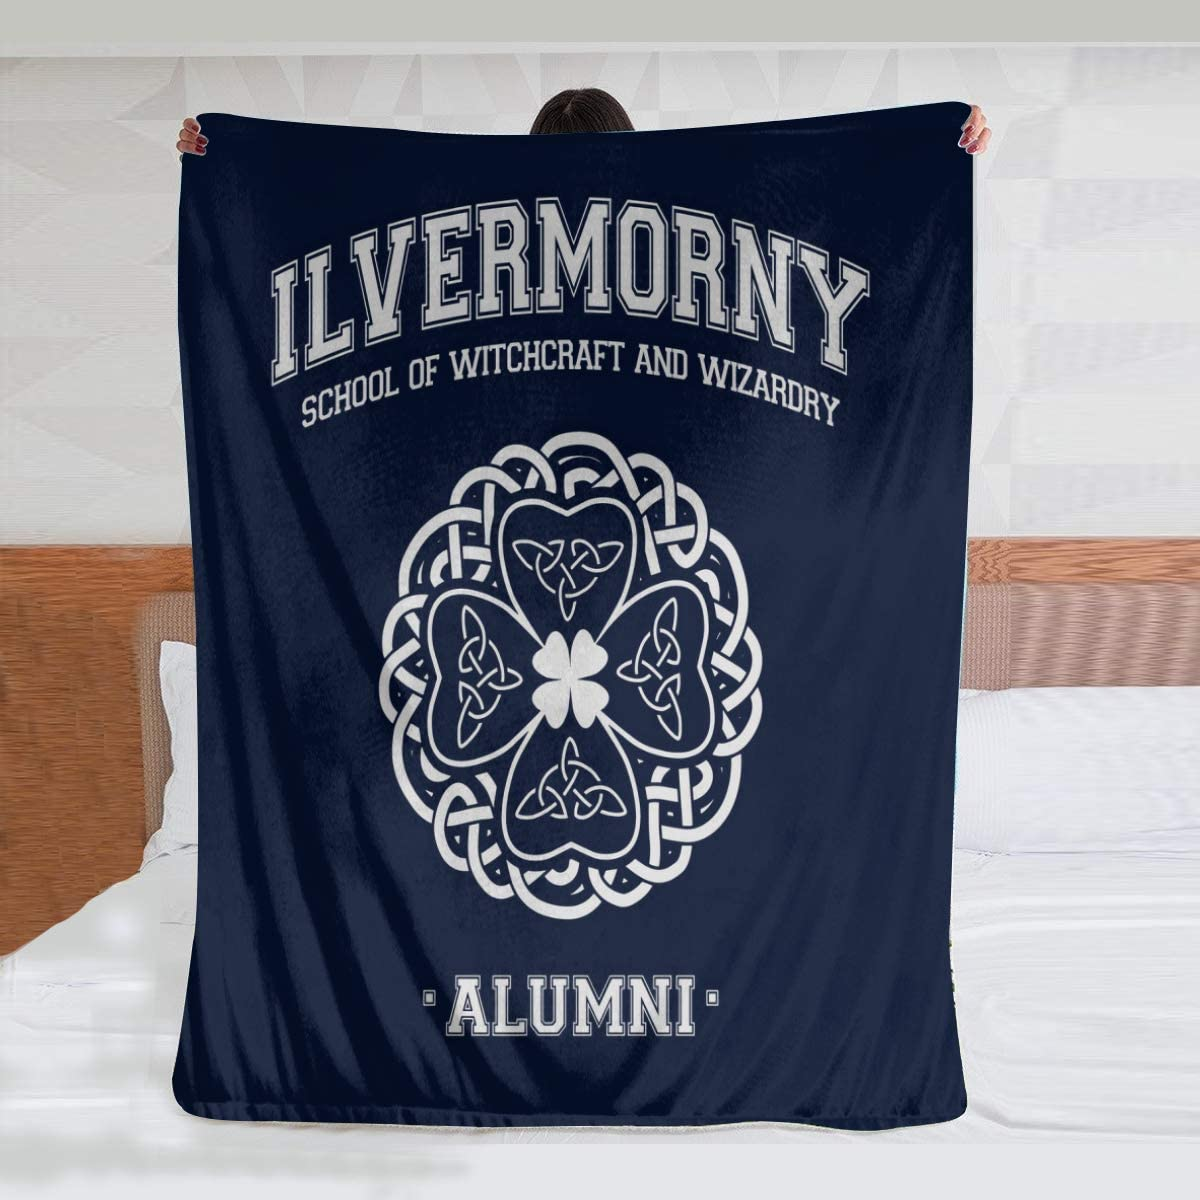 HCLIFE Ilvermorny In a popularity Alumni ! Super beauty product restock quality top! Dark Throw Blanket P Super Warm Soft